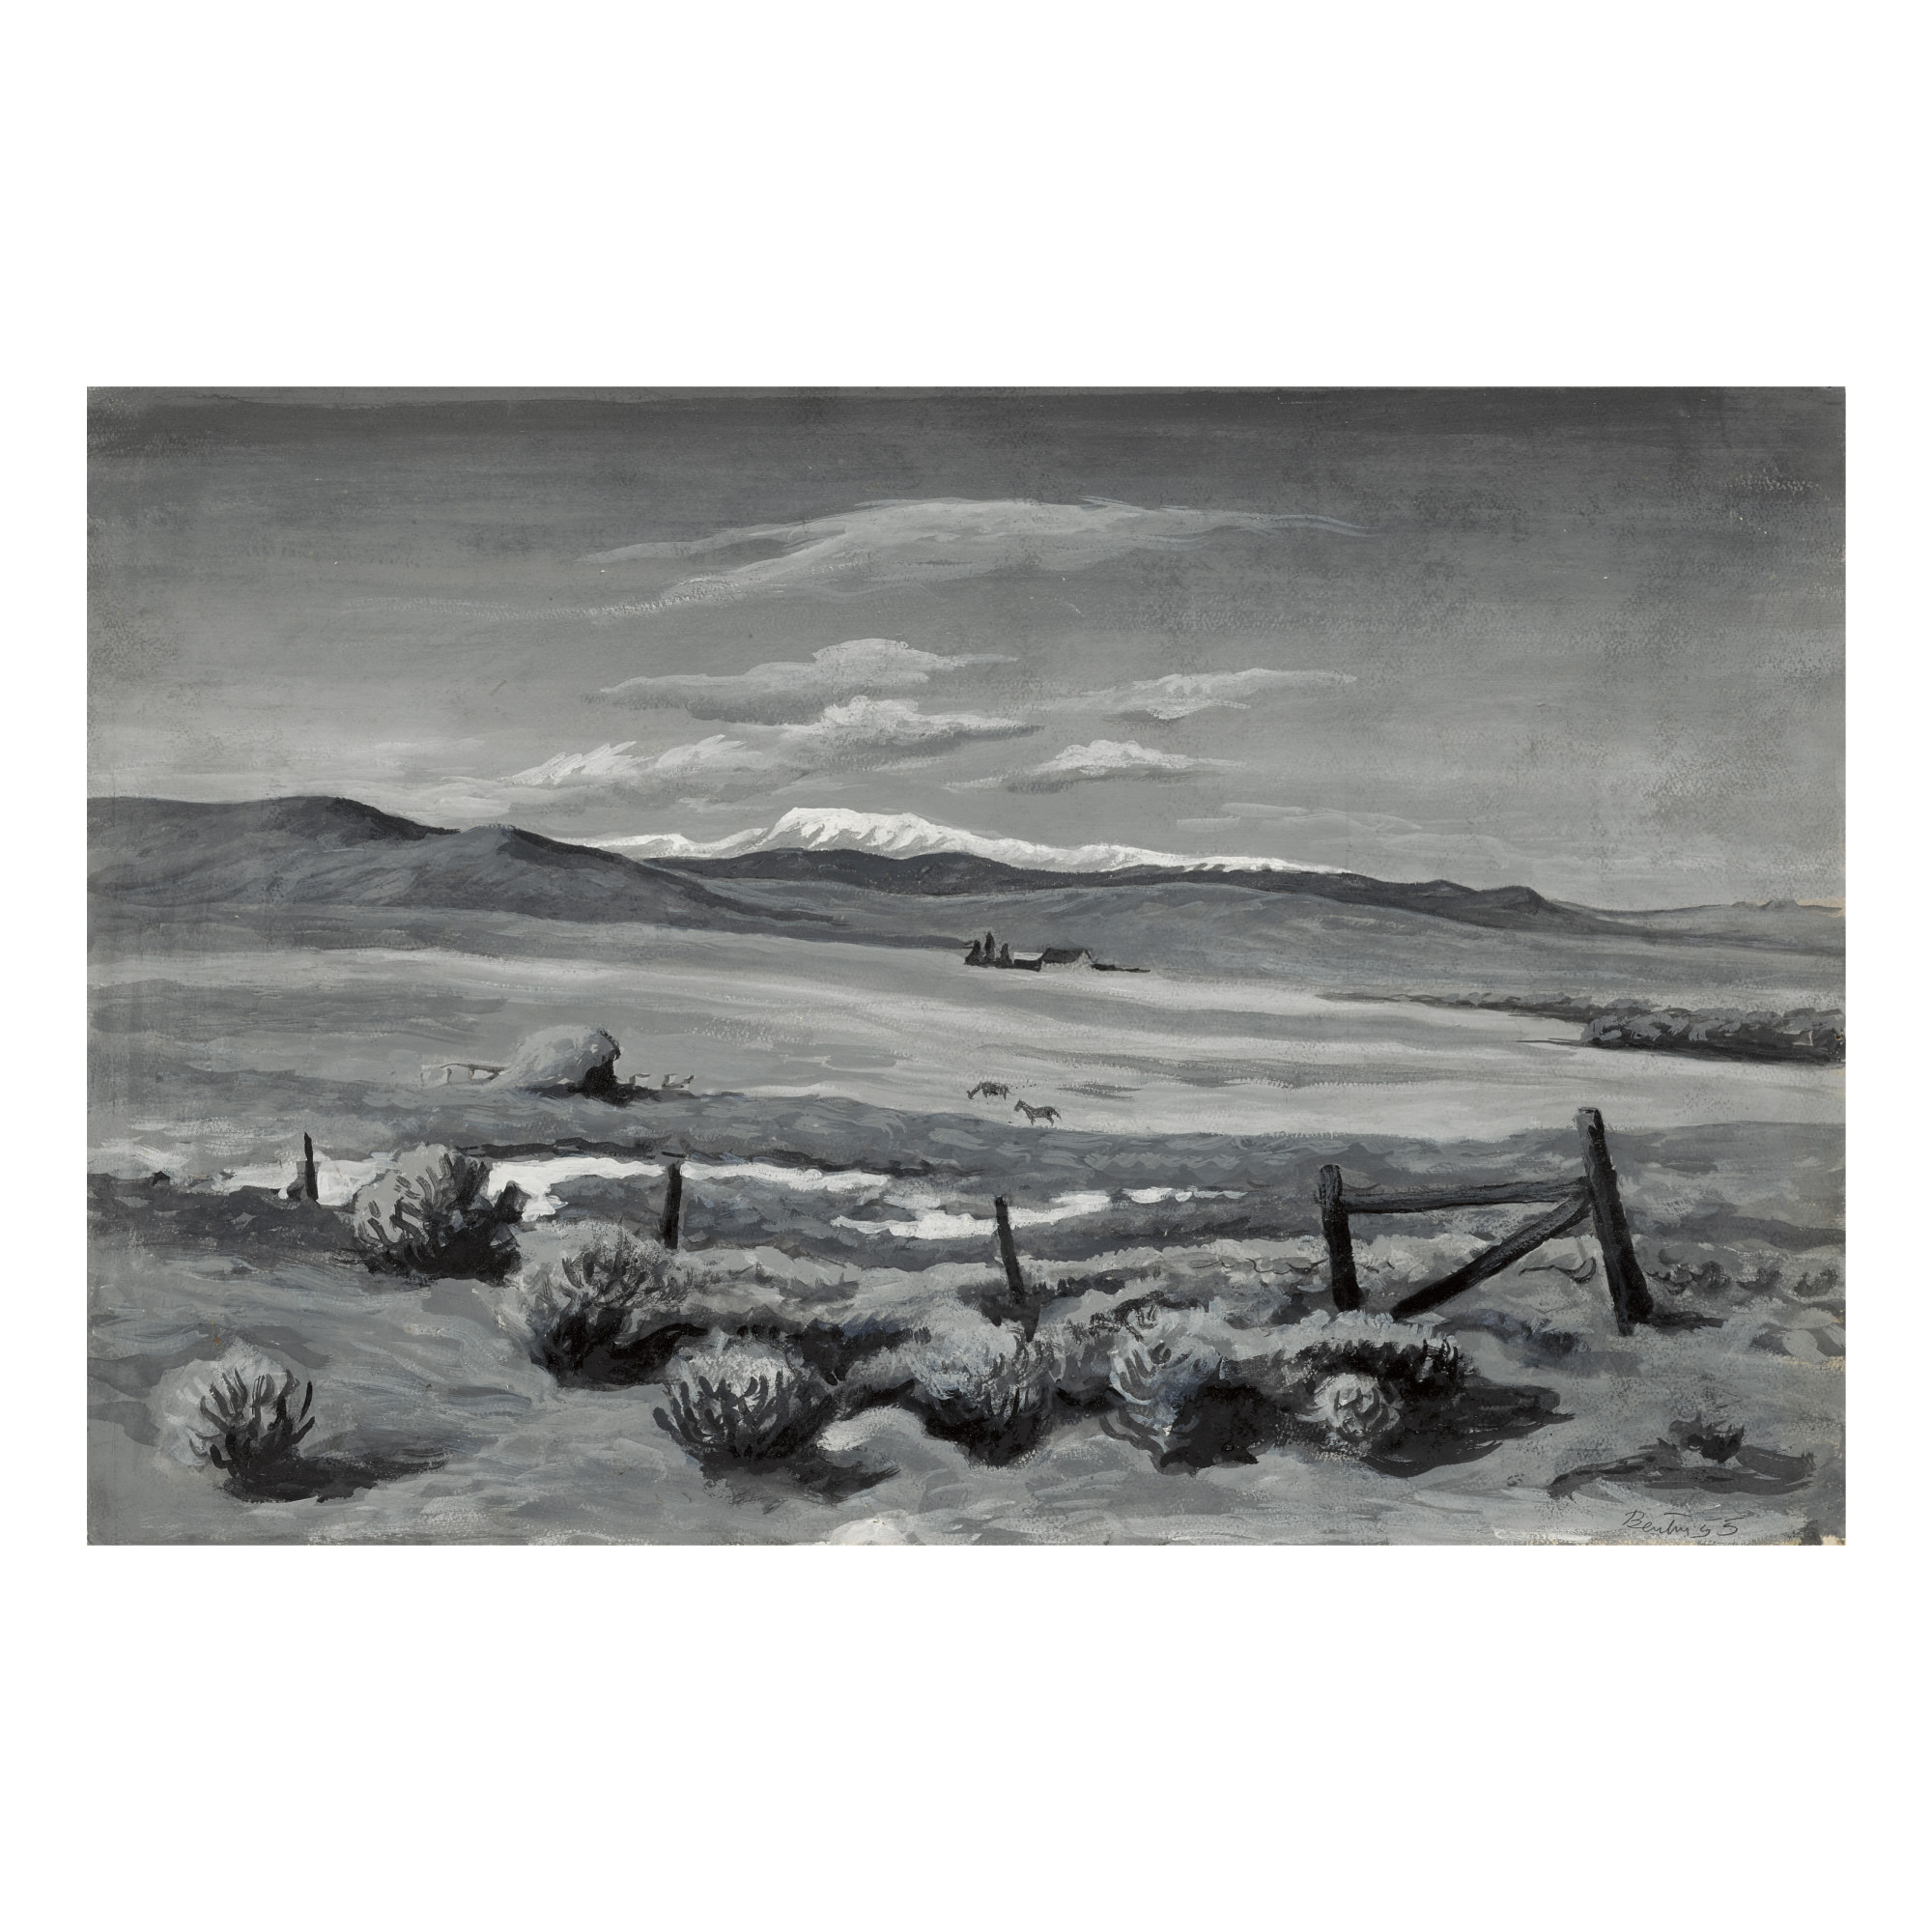 THOMAS HART BENTON | STUDY FROM NATURE (STUDY FOR 'THE WHITE HORSE BY THE GATE')